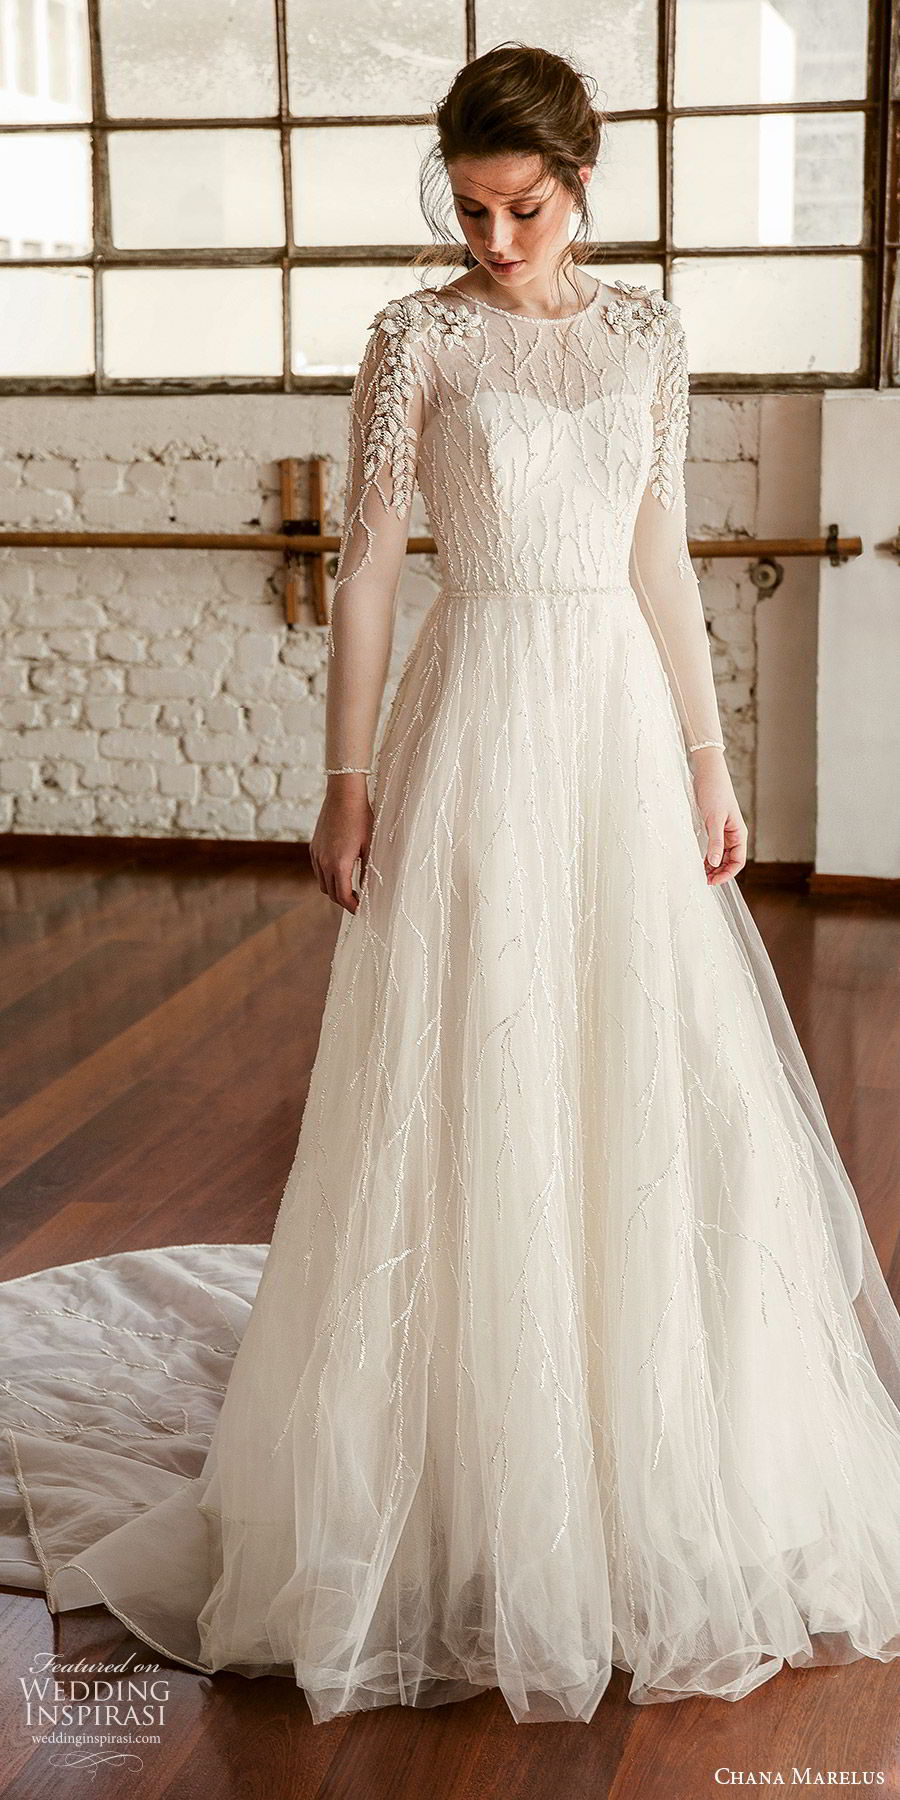 chana marelus fall 2019 bridal illusion long sleeves sheer jewel neck semi sweetheart neckline fully embellished a line ball gown wedding dress (2) elegant romantic chapel train mv